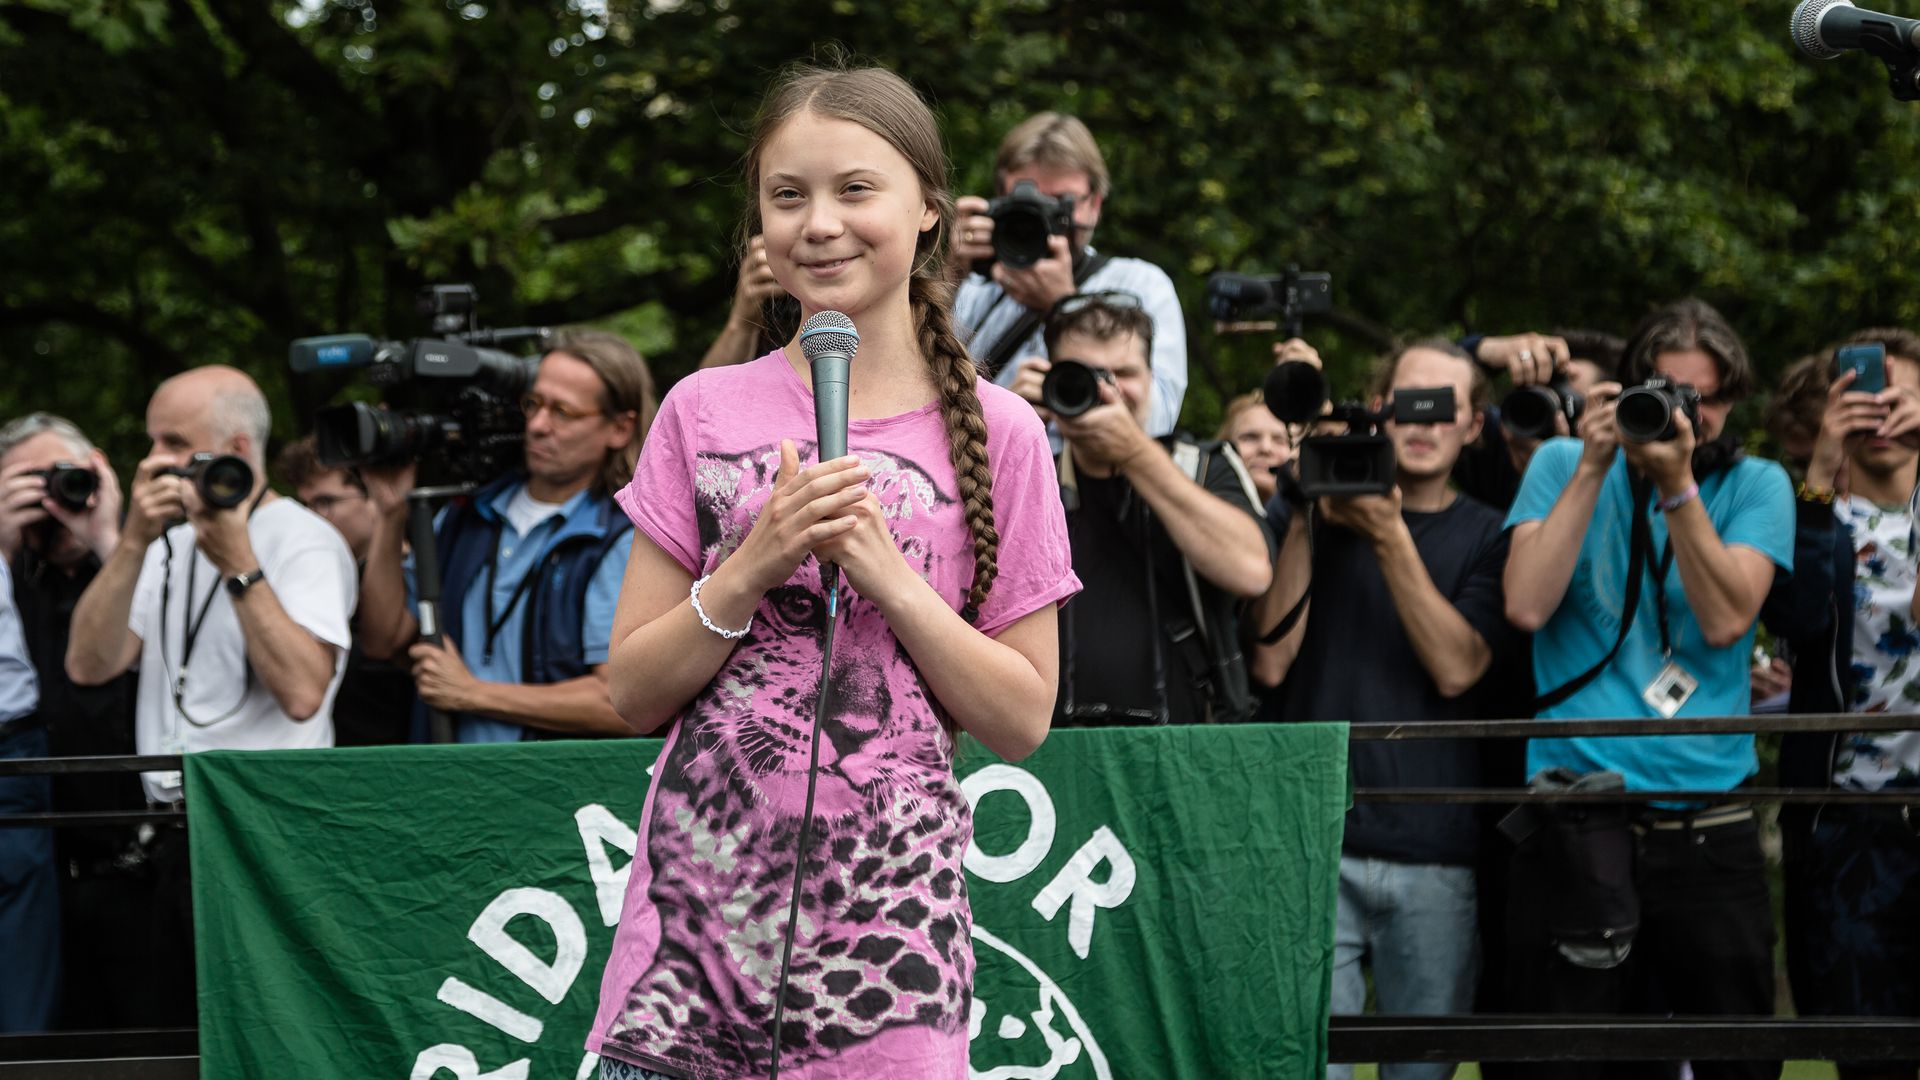 Greta Thunberg to visit Standing Rock Reservation, site of #NoDAPL protests